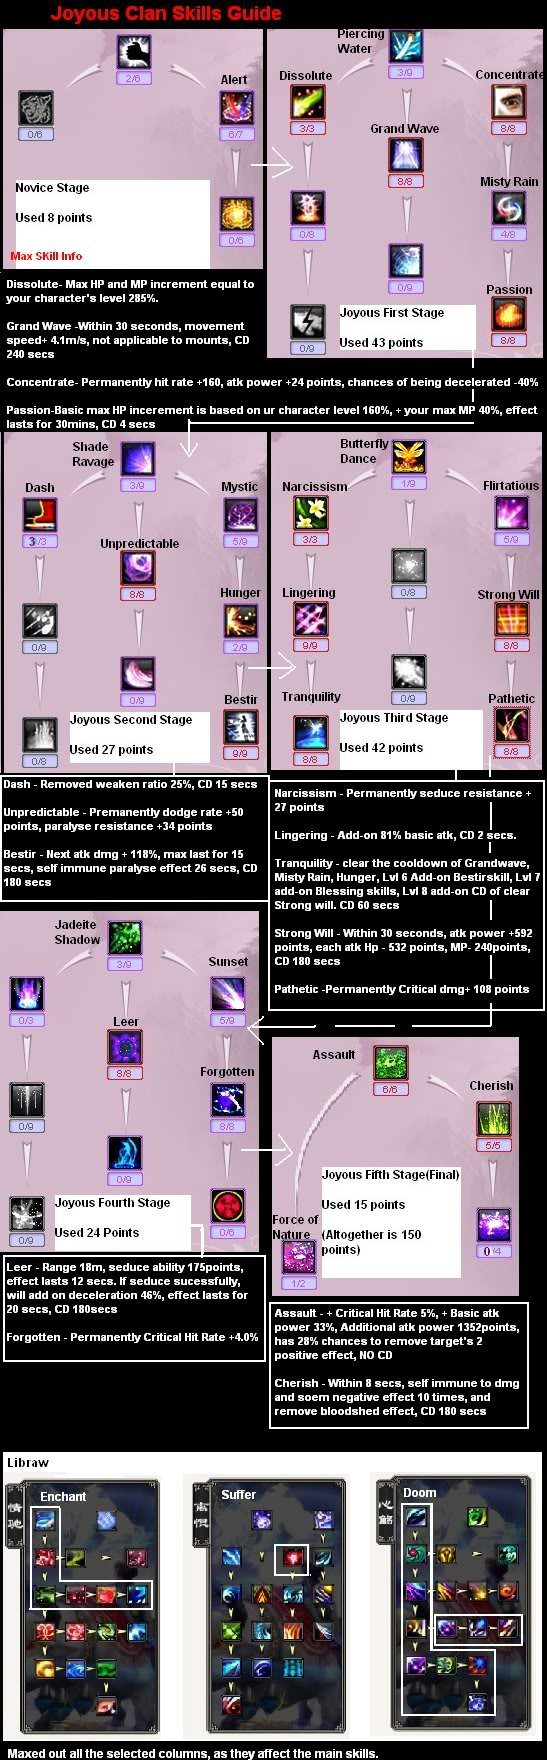 ~~JD Skills Guide for every class~~(Skill Tree) JoyousSkill